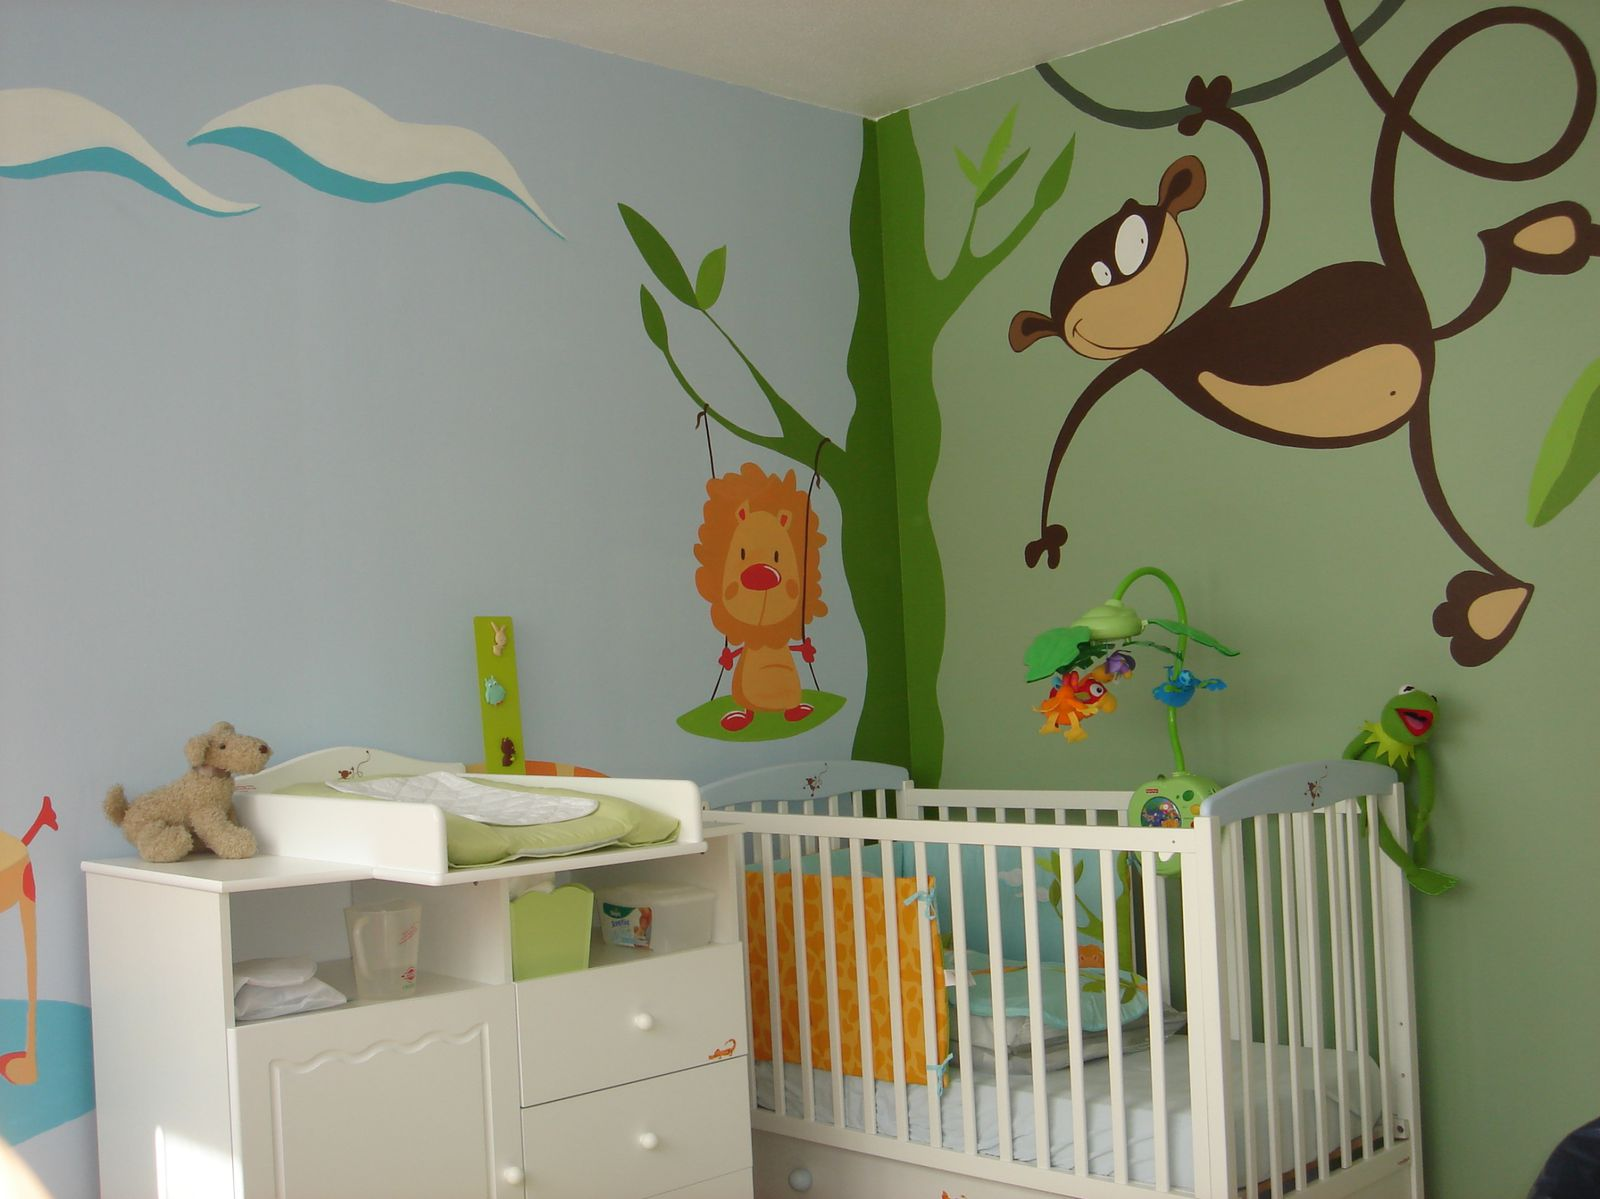 D co de chambre b b jank artiste peintre decorateur - Decoratie murale bebe ...